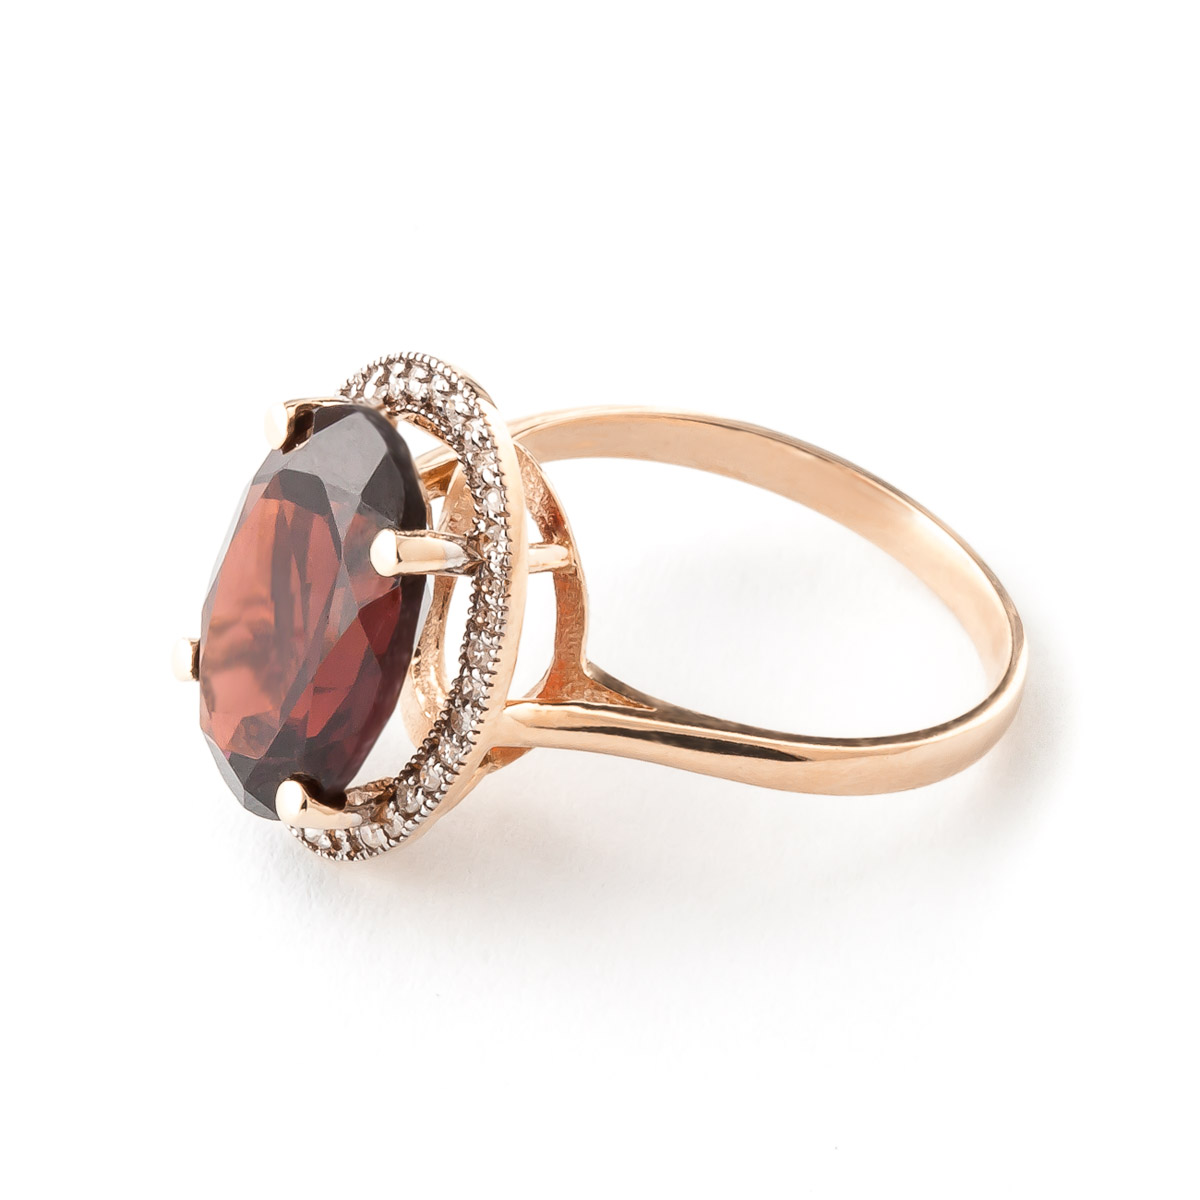 Garnet and Diamond Halo Ring 6.0ct in 9ct Rose Gold